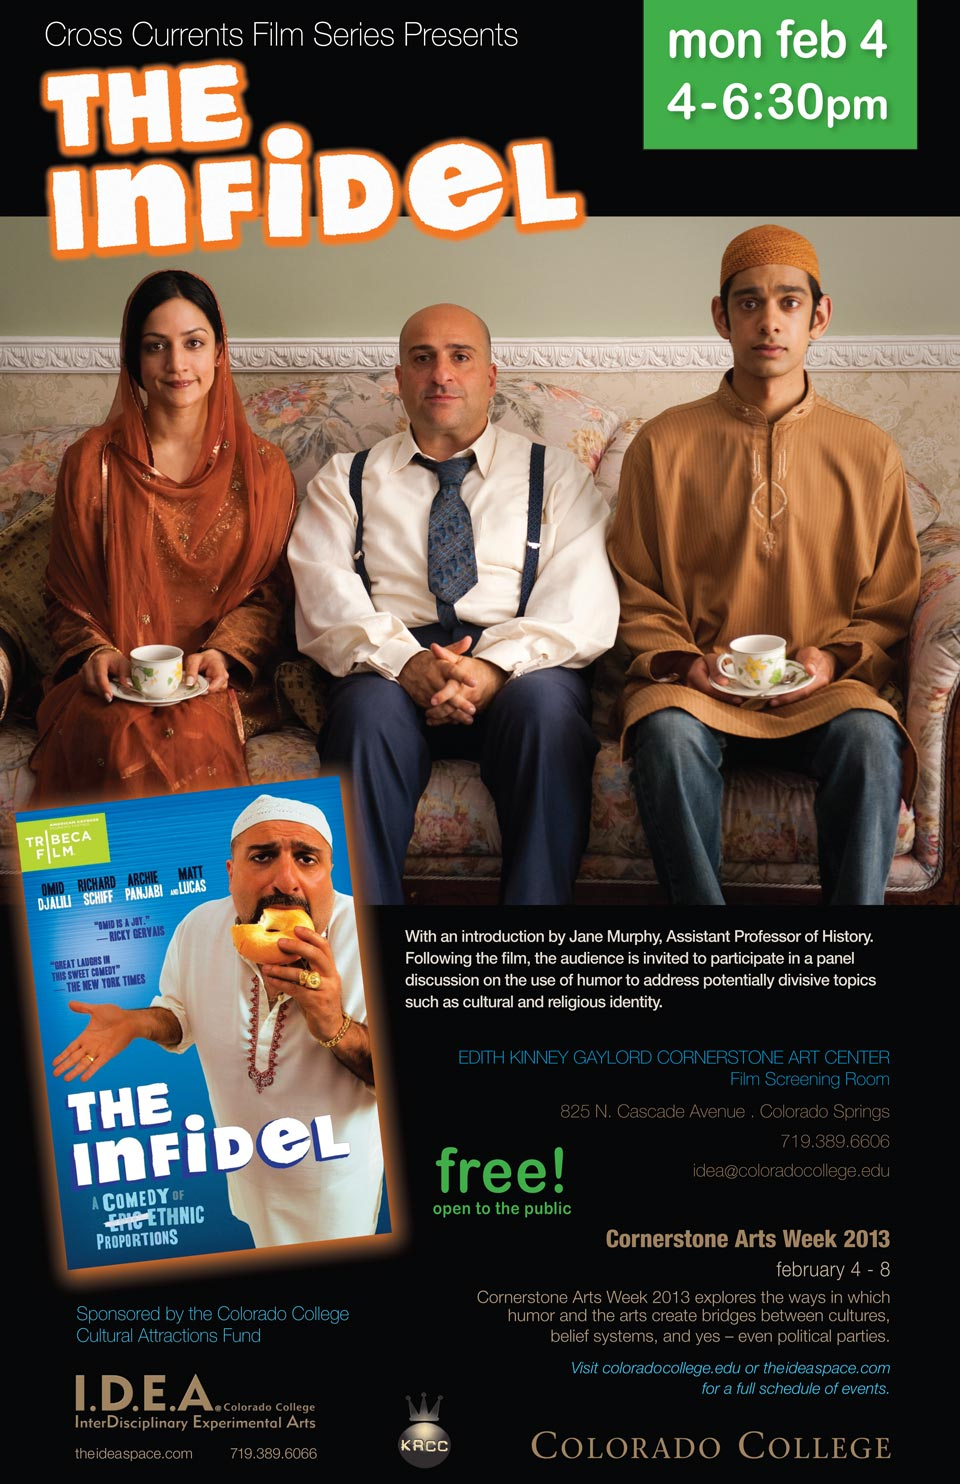 The-Infidel-Film-Poster